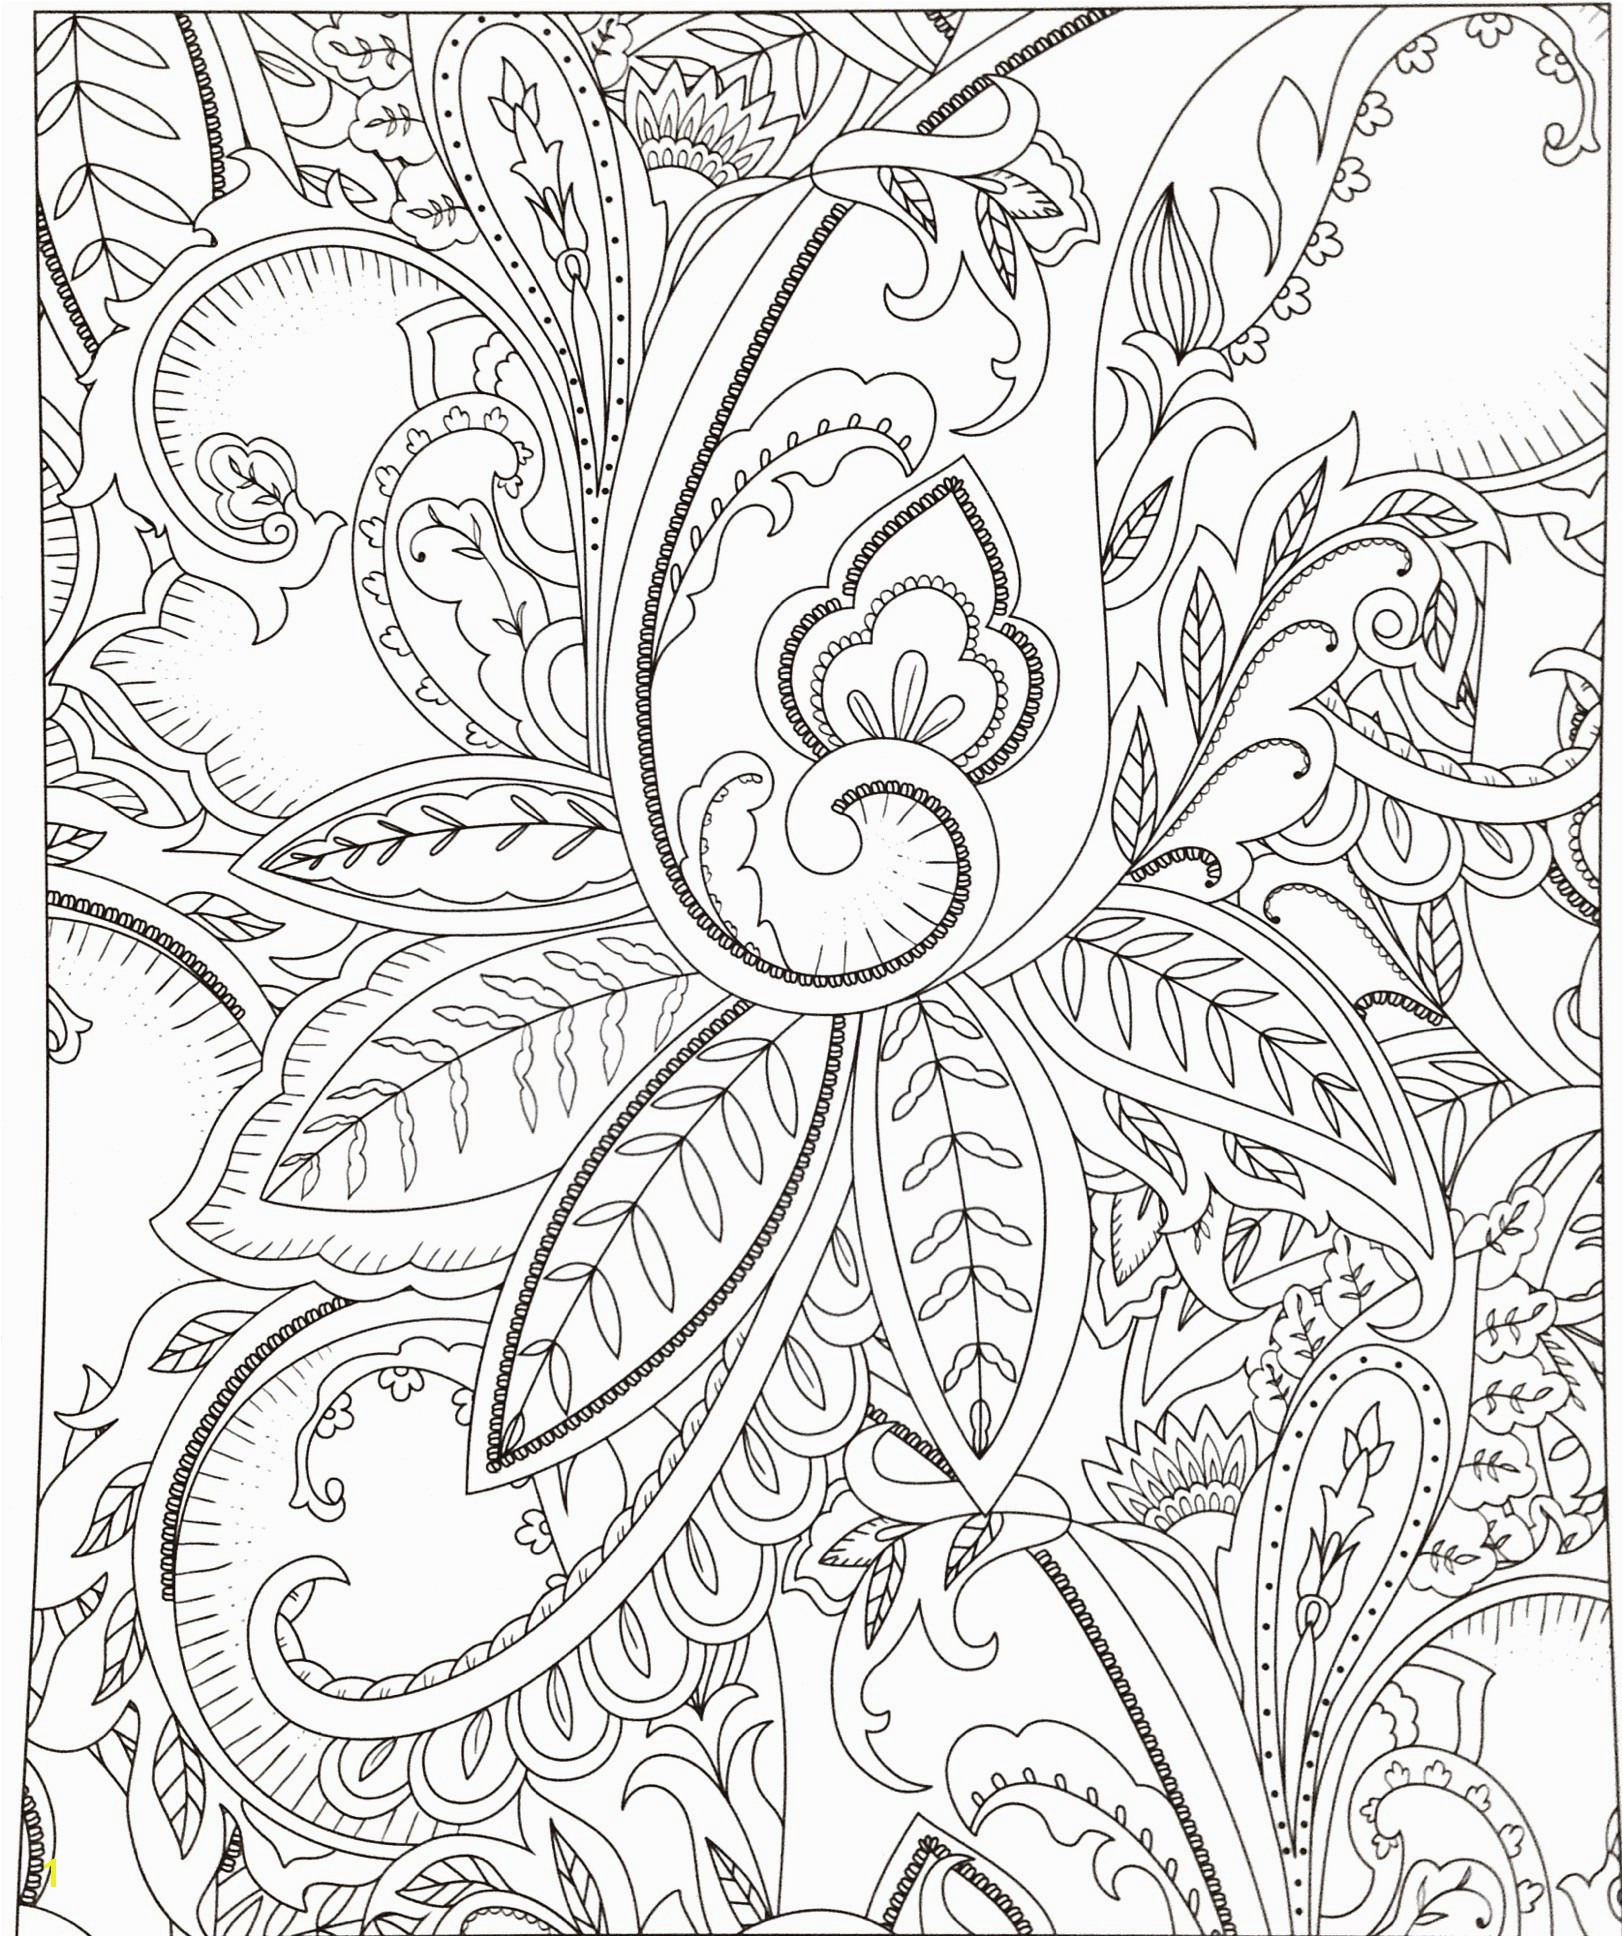 Printable to Color Flowers Inspirational Cool Vases Flower Vase Coloring Page Pages Flowers In